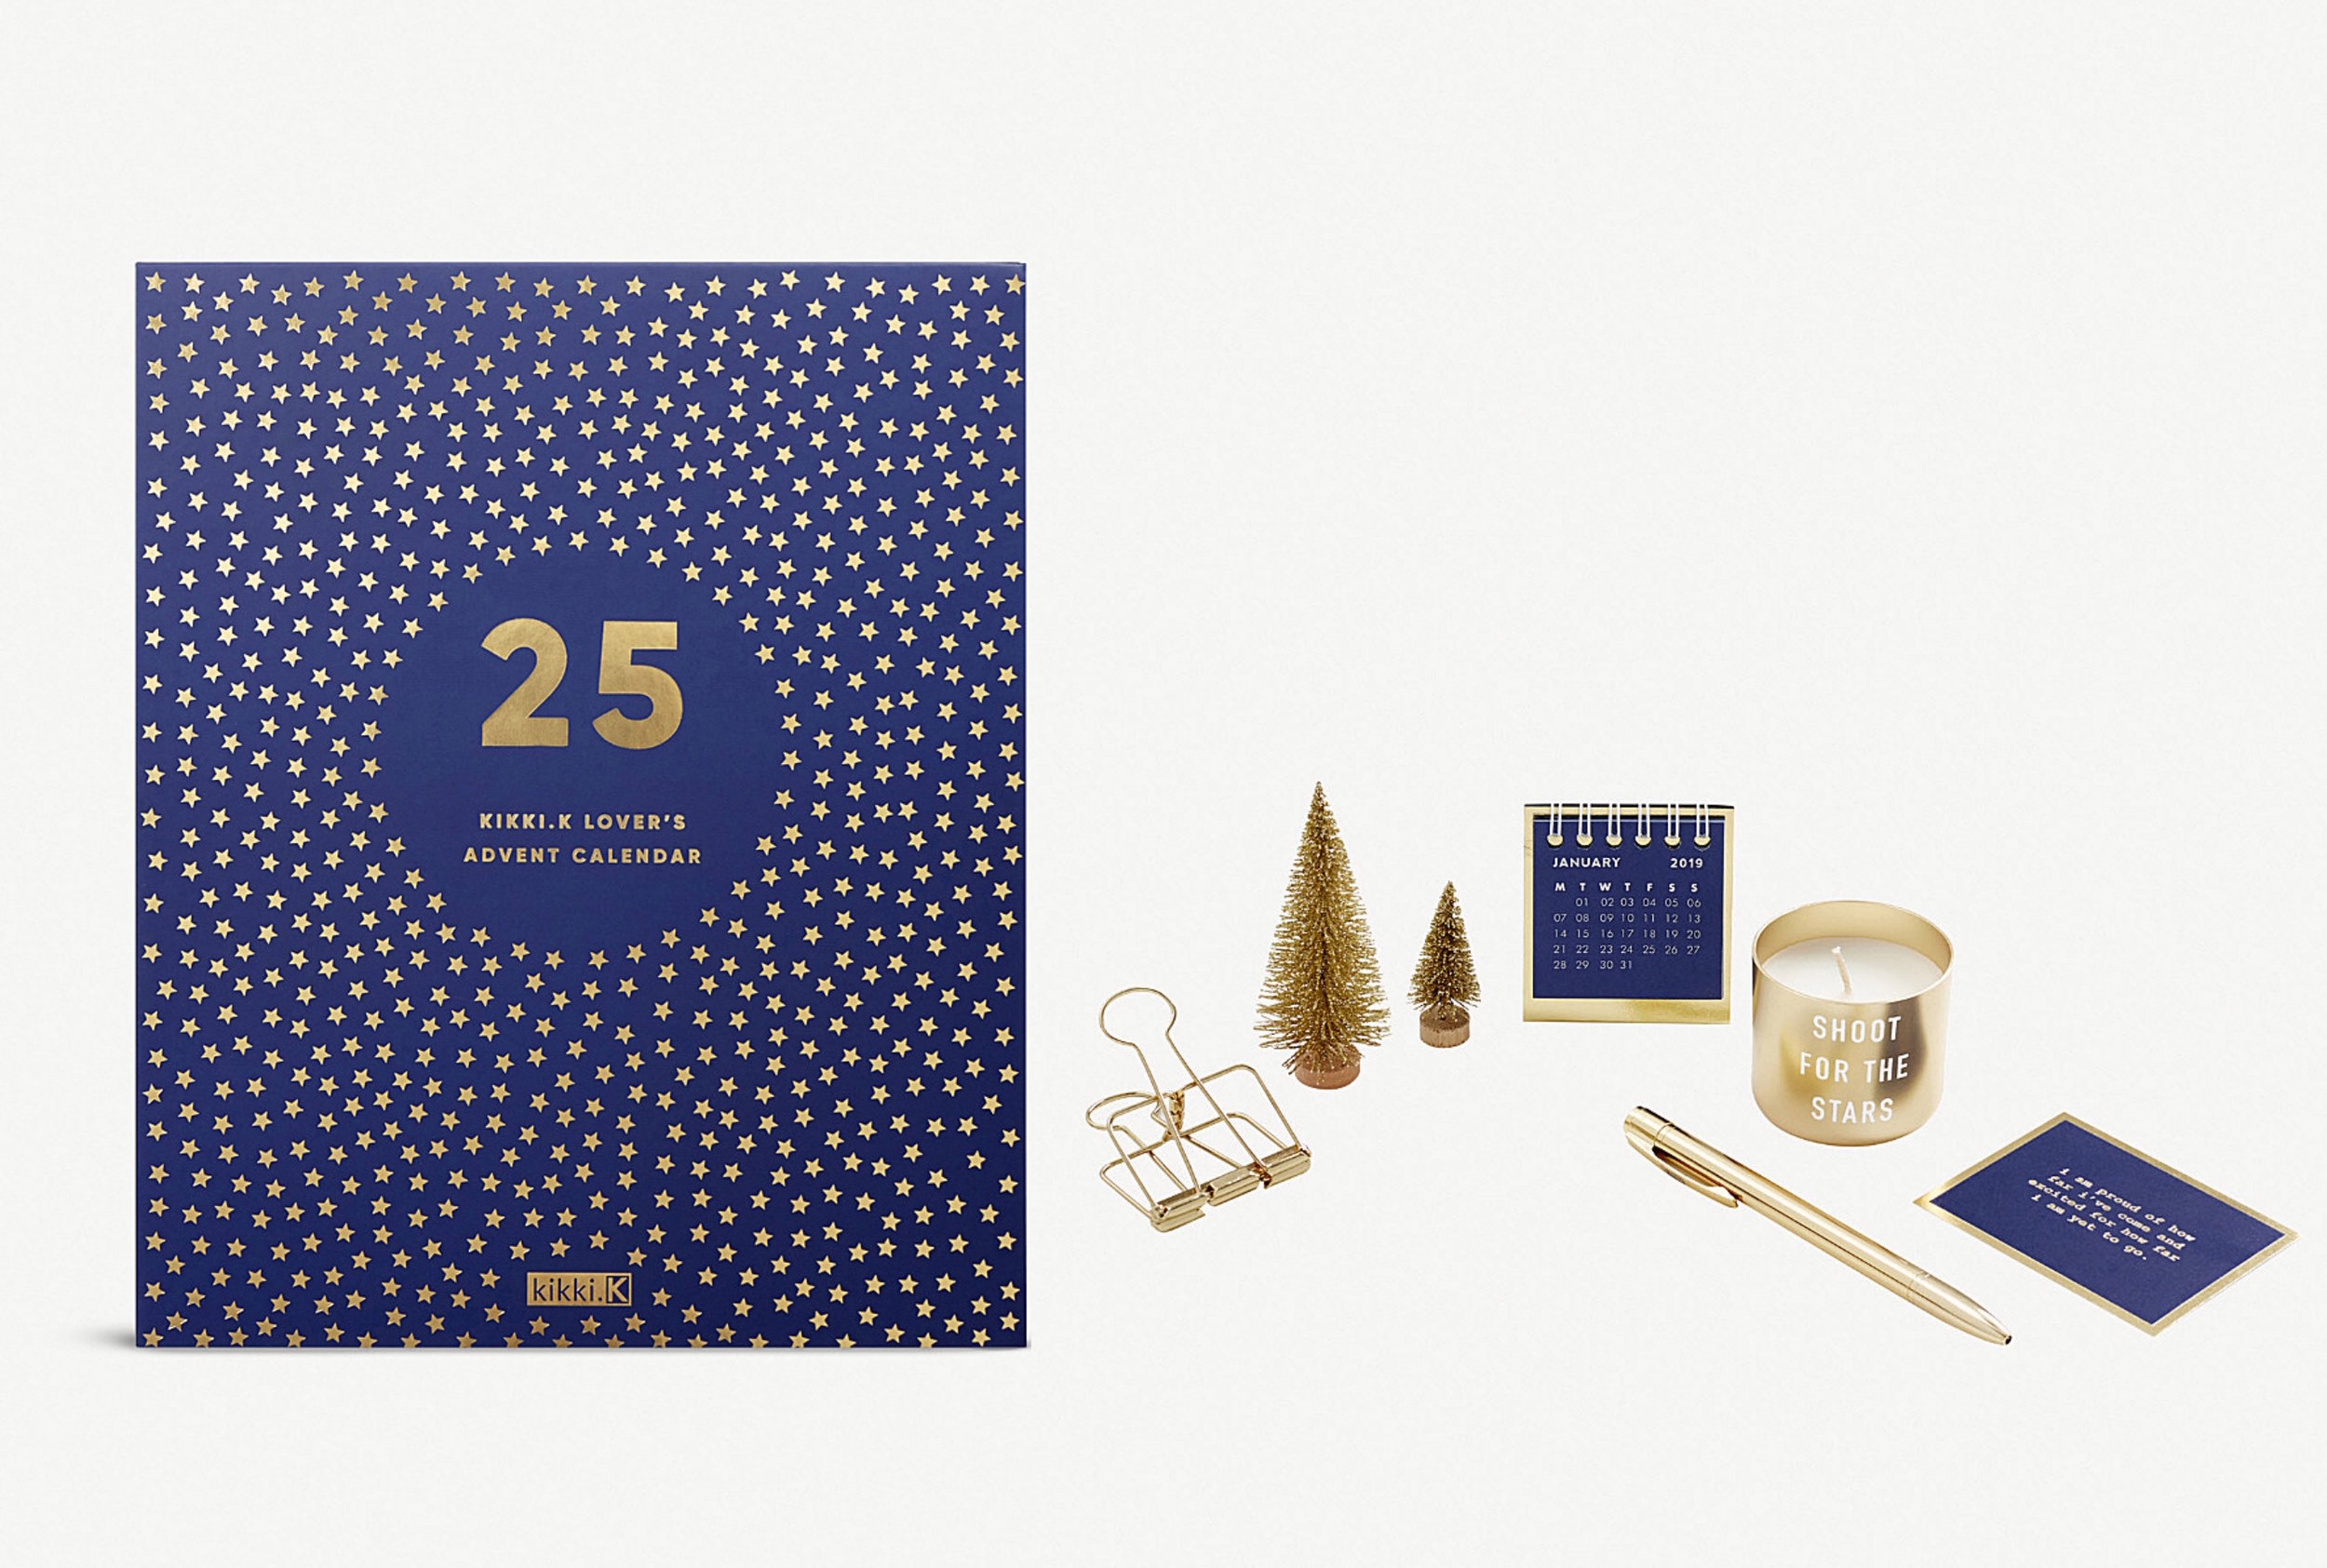 Stationery Lover's Advent Calendar from Kikki K - Available at Selfridges, Swedish label Kikki.K's advent calendar is a stationery lover's dream with star-covered pens, mini candles and notepads waiting behind the midnight blue doors.£90.00